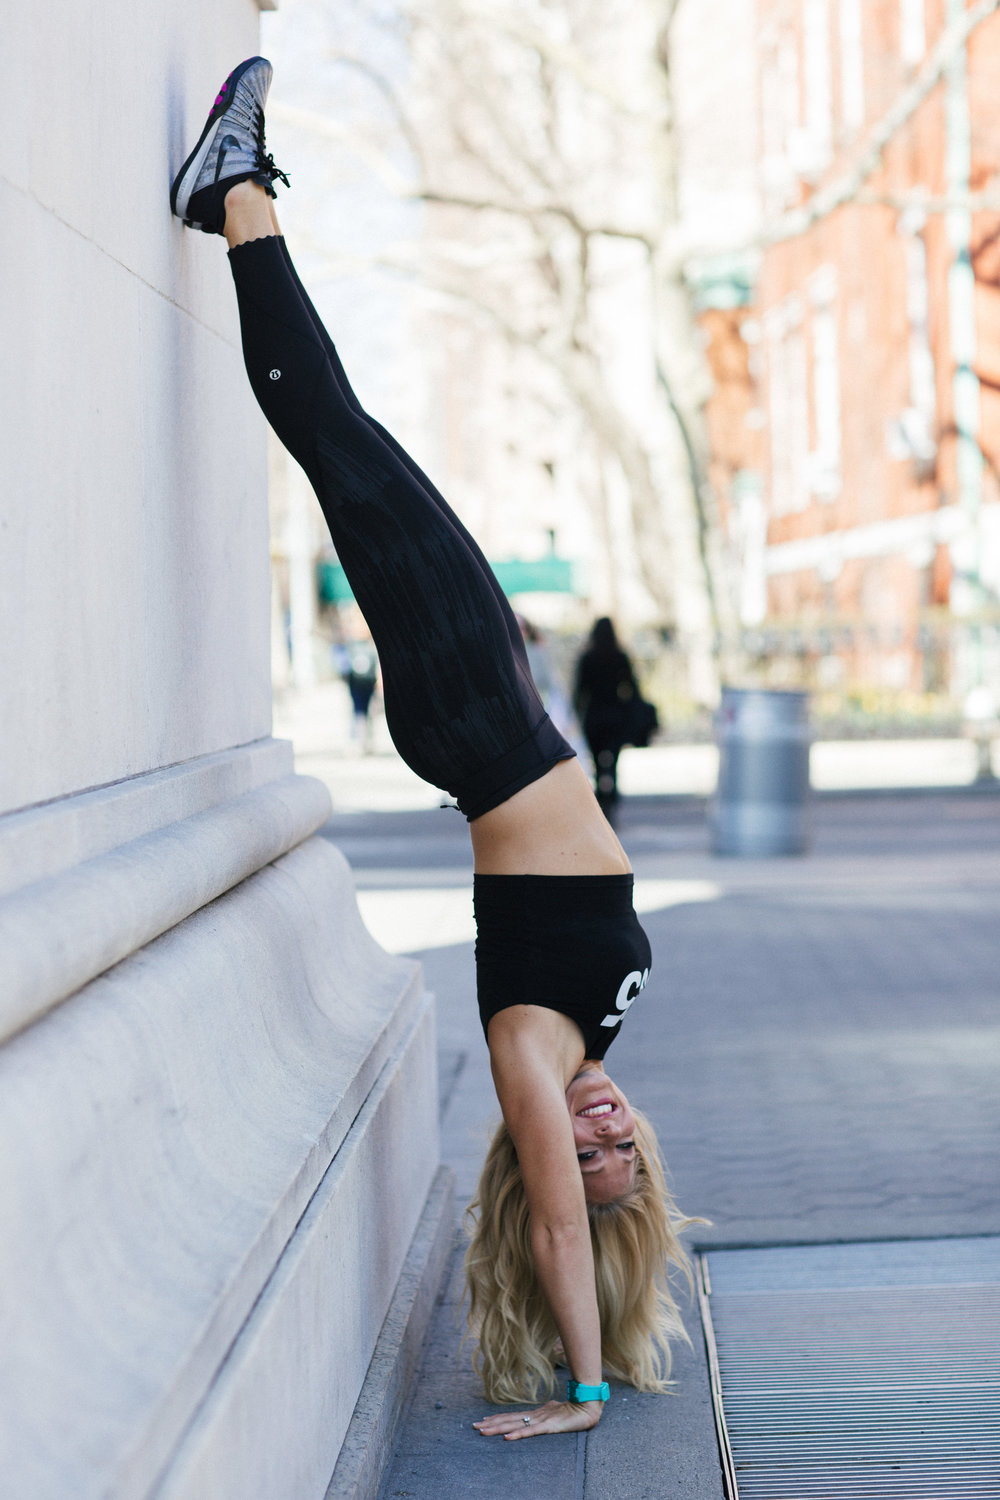 Anna Kooiman Washington Square Park NYC Handstand NYC New York City Lydia Hudgens